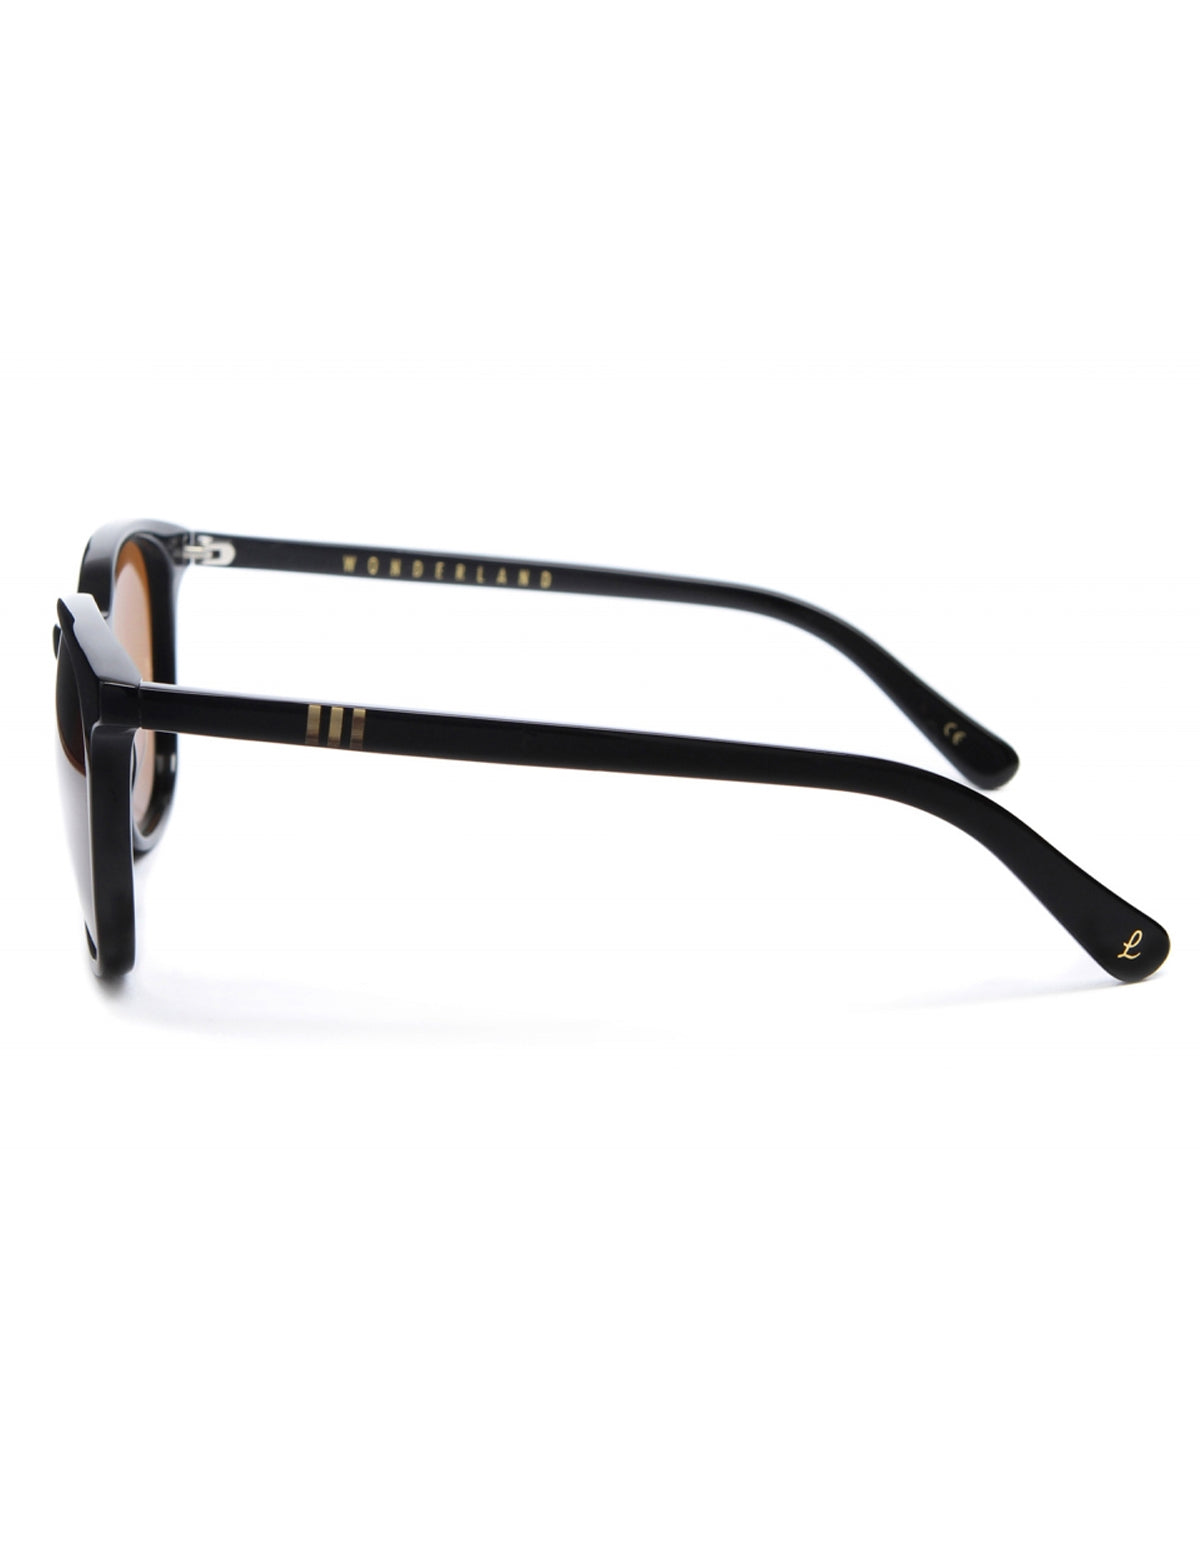 Wonderland Barstow Sunglasses, Gloss Black, Bronze